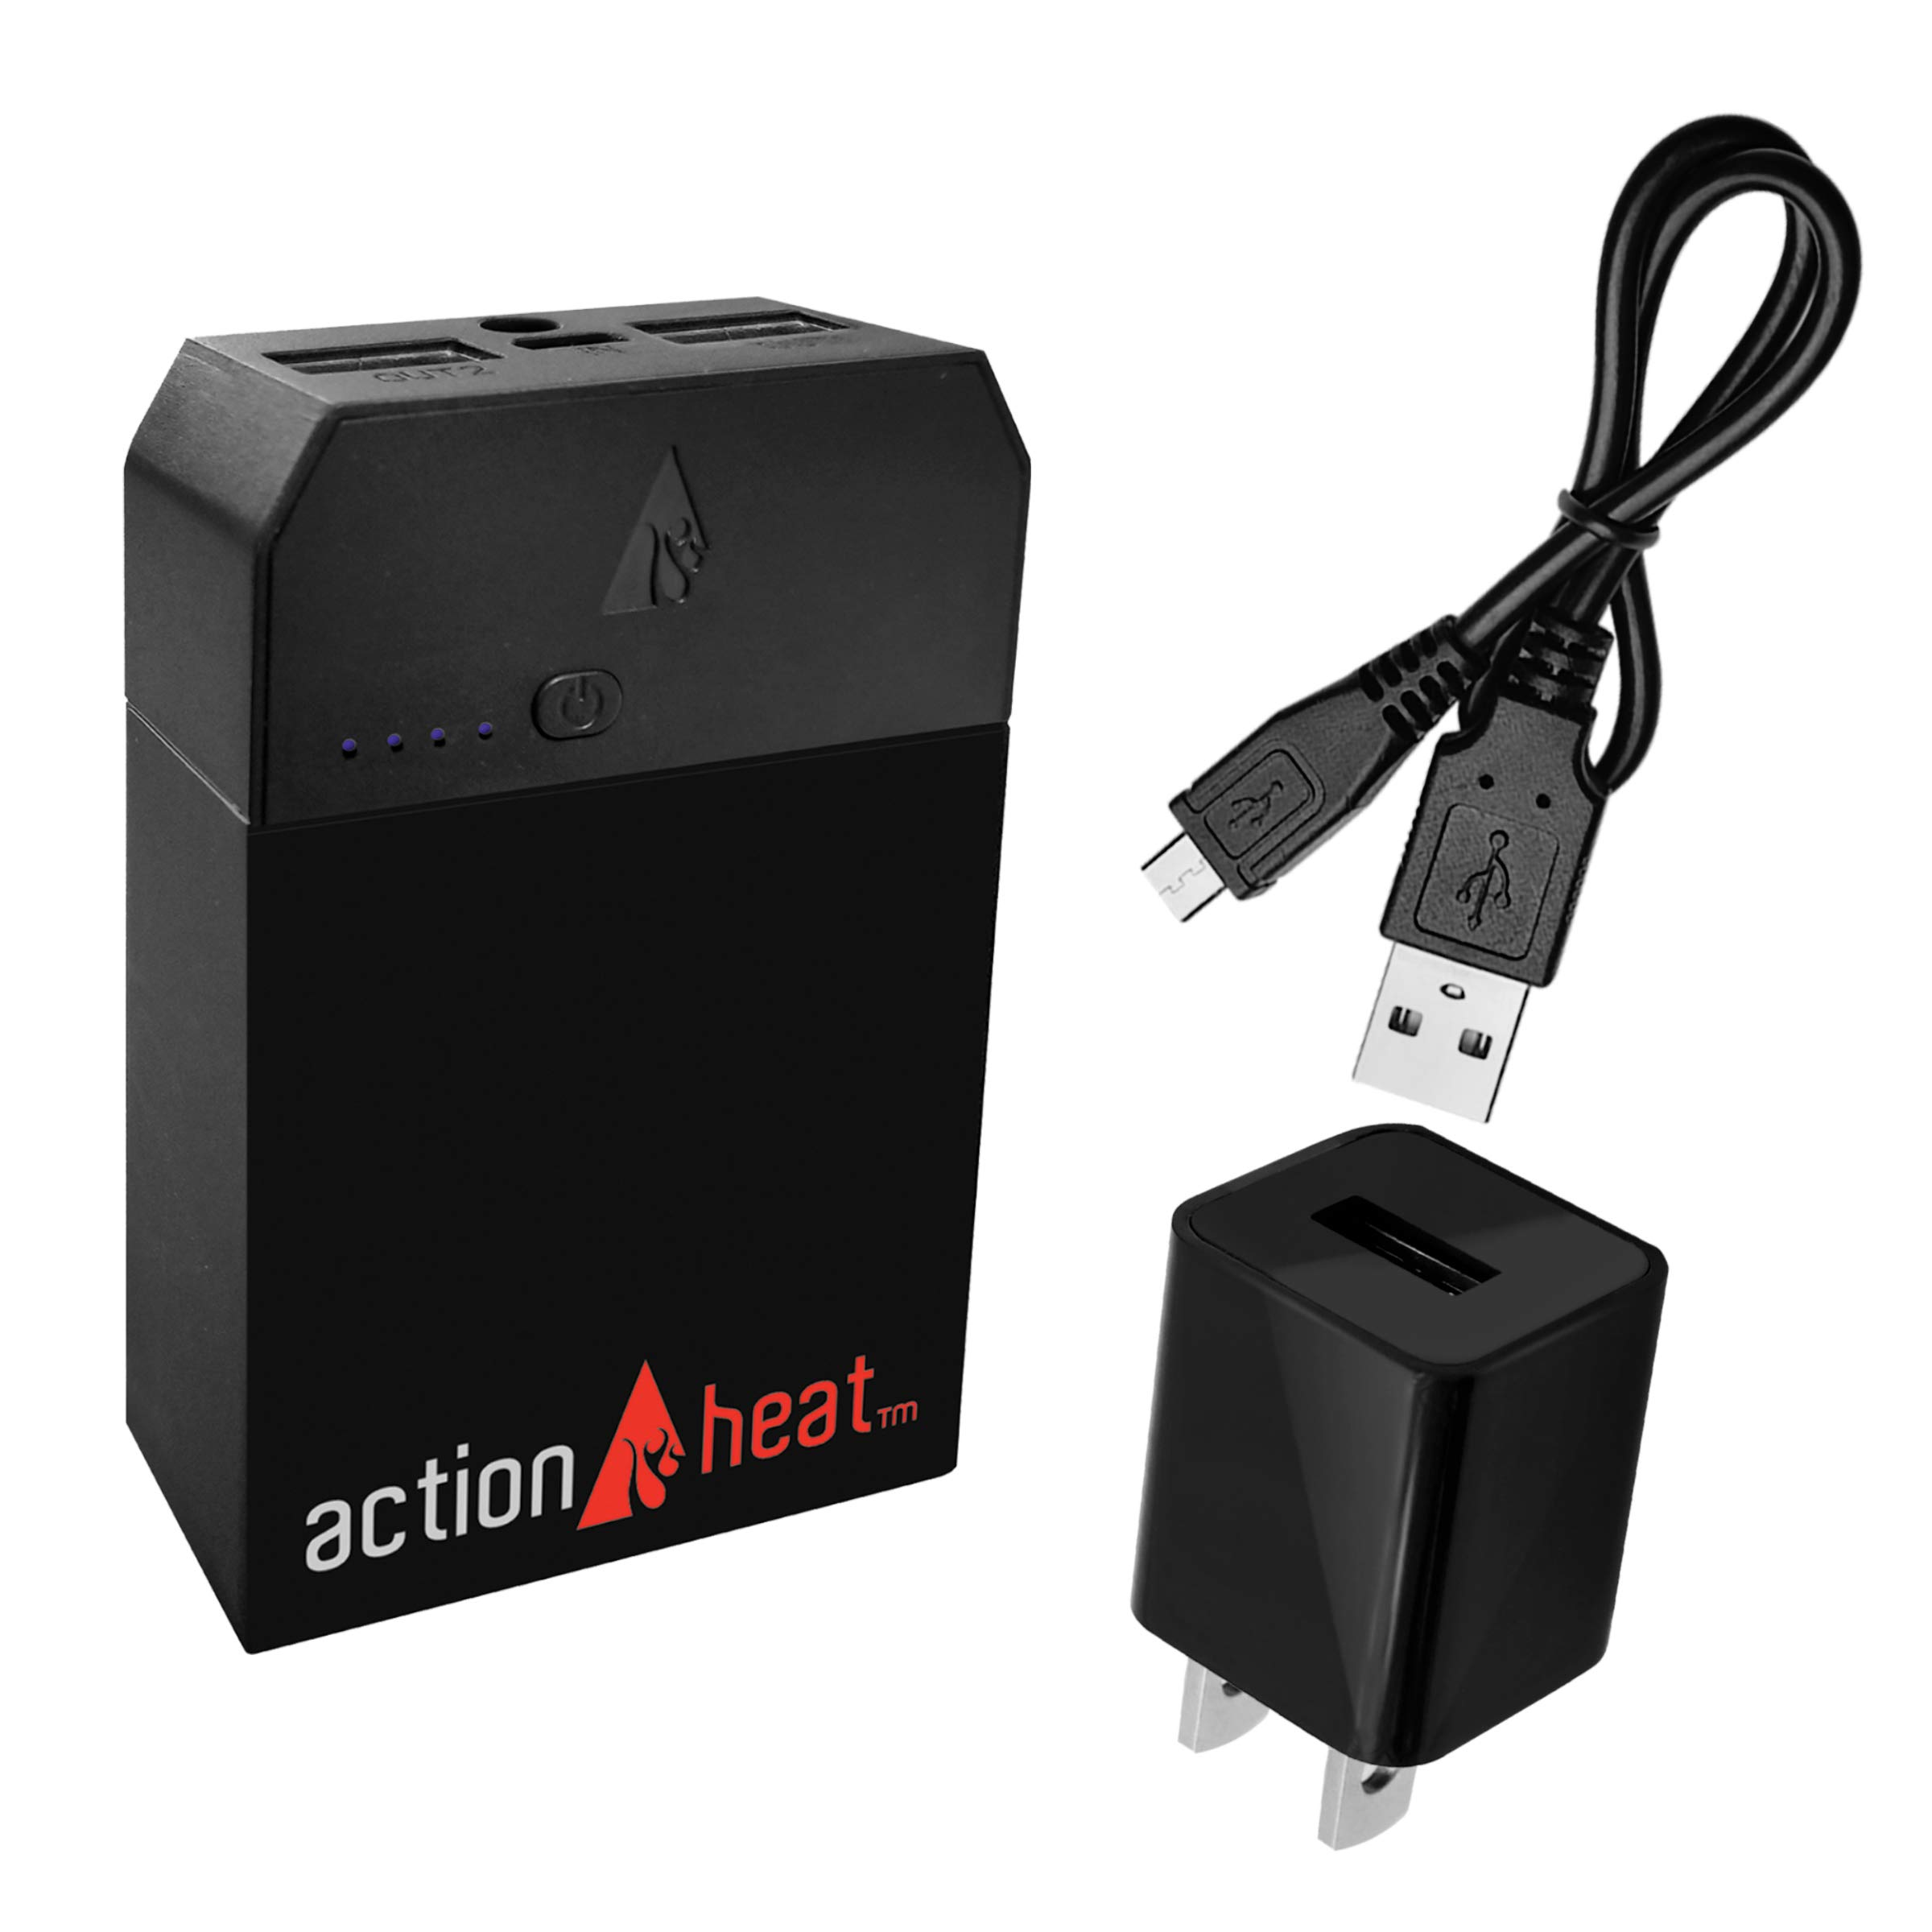 ActionHeat Portable 5V Power Bank 6000mAh Kit – Lithium-Polymer Rechargeable Battery Pack for Heated Clothing and Charging Tablets, Smartphones – Black